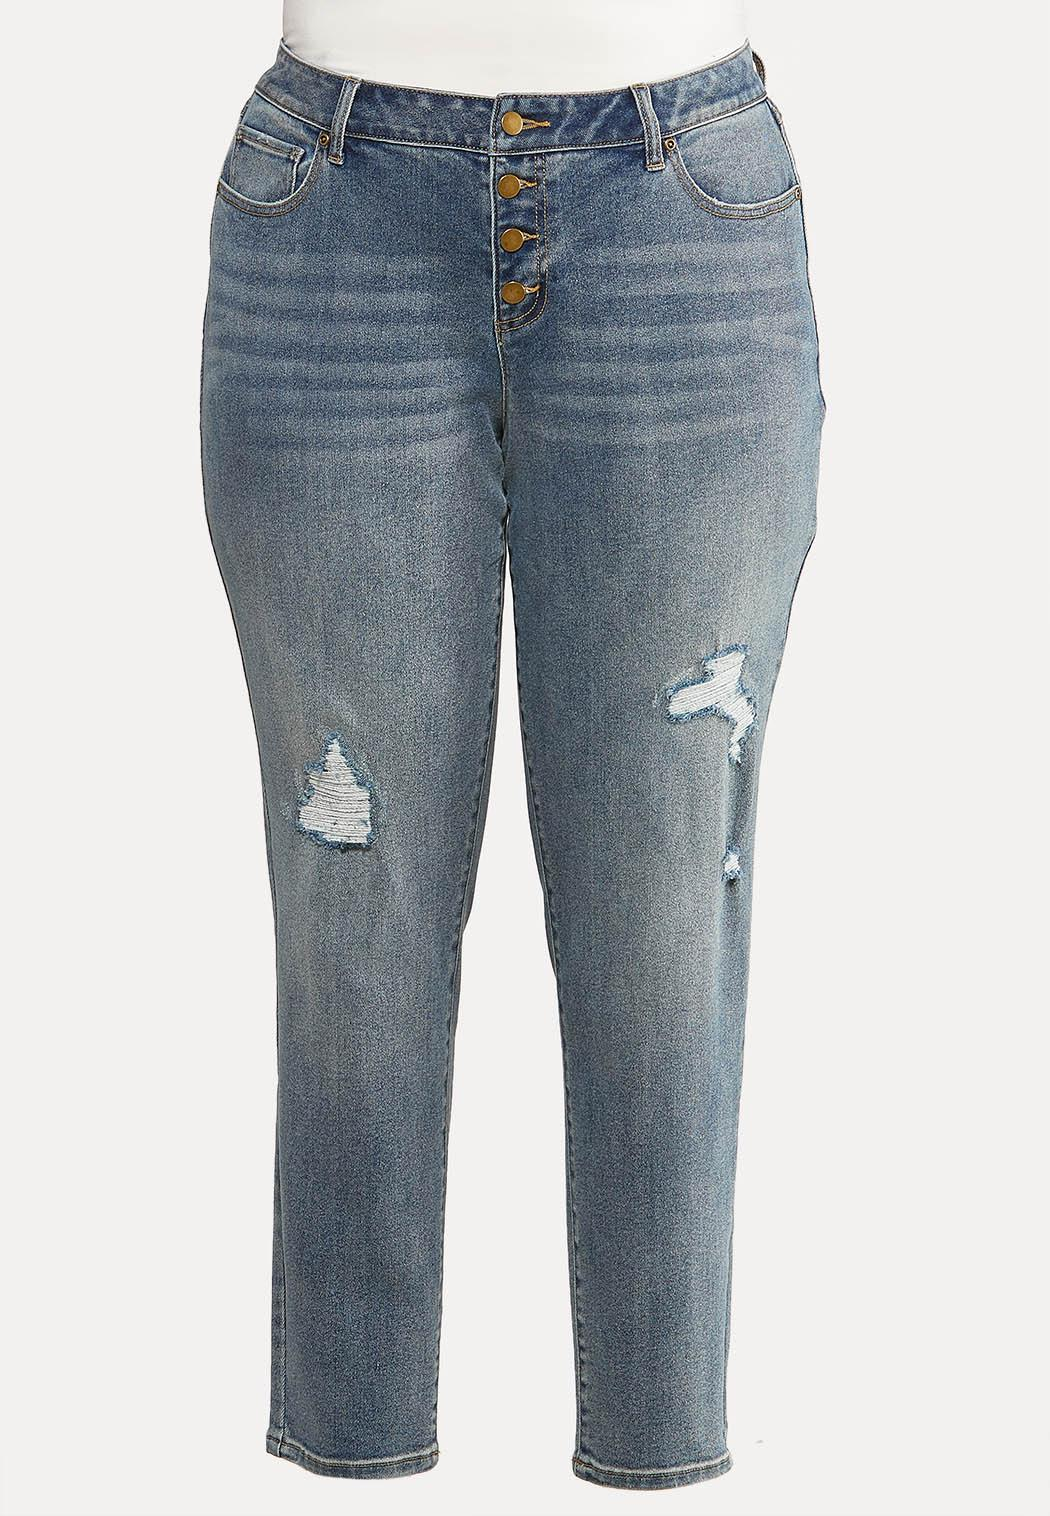 Plus Size Distressed Buttonfly Jeans